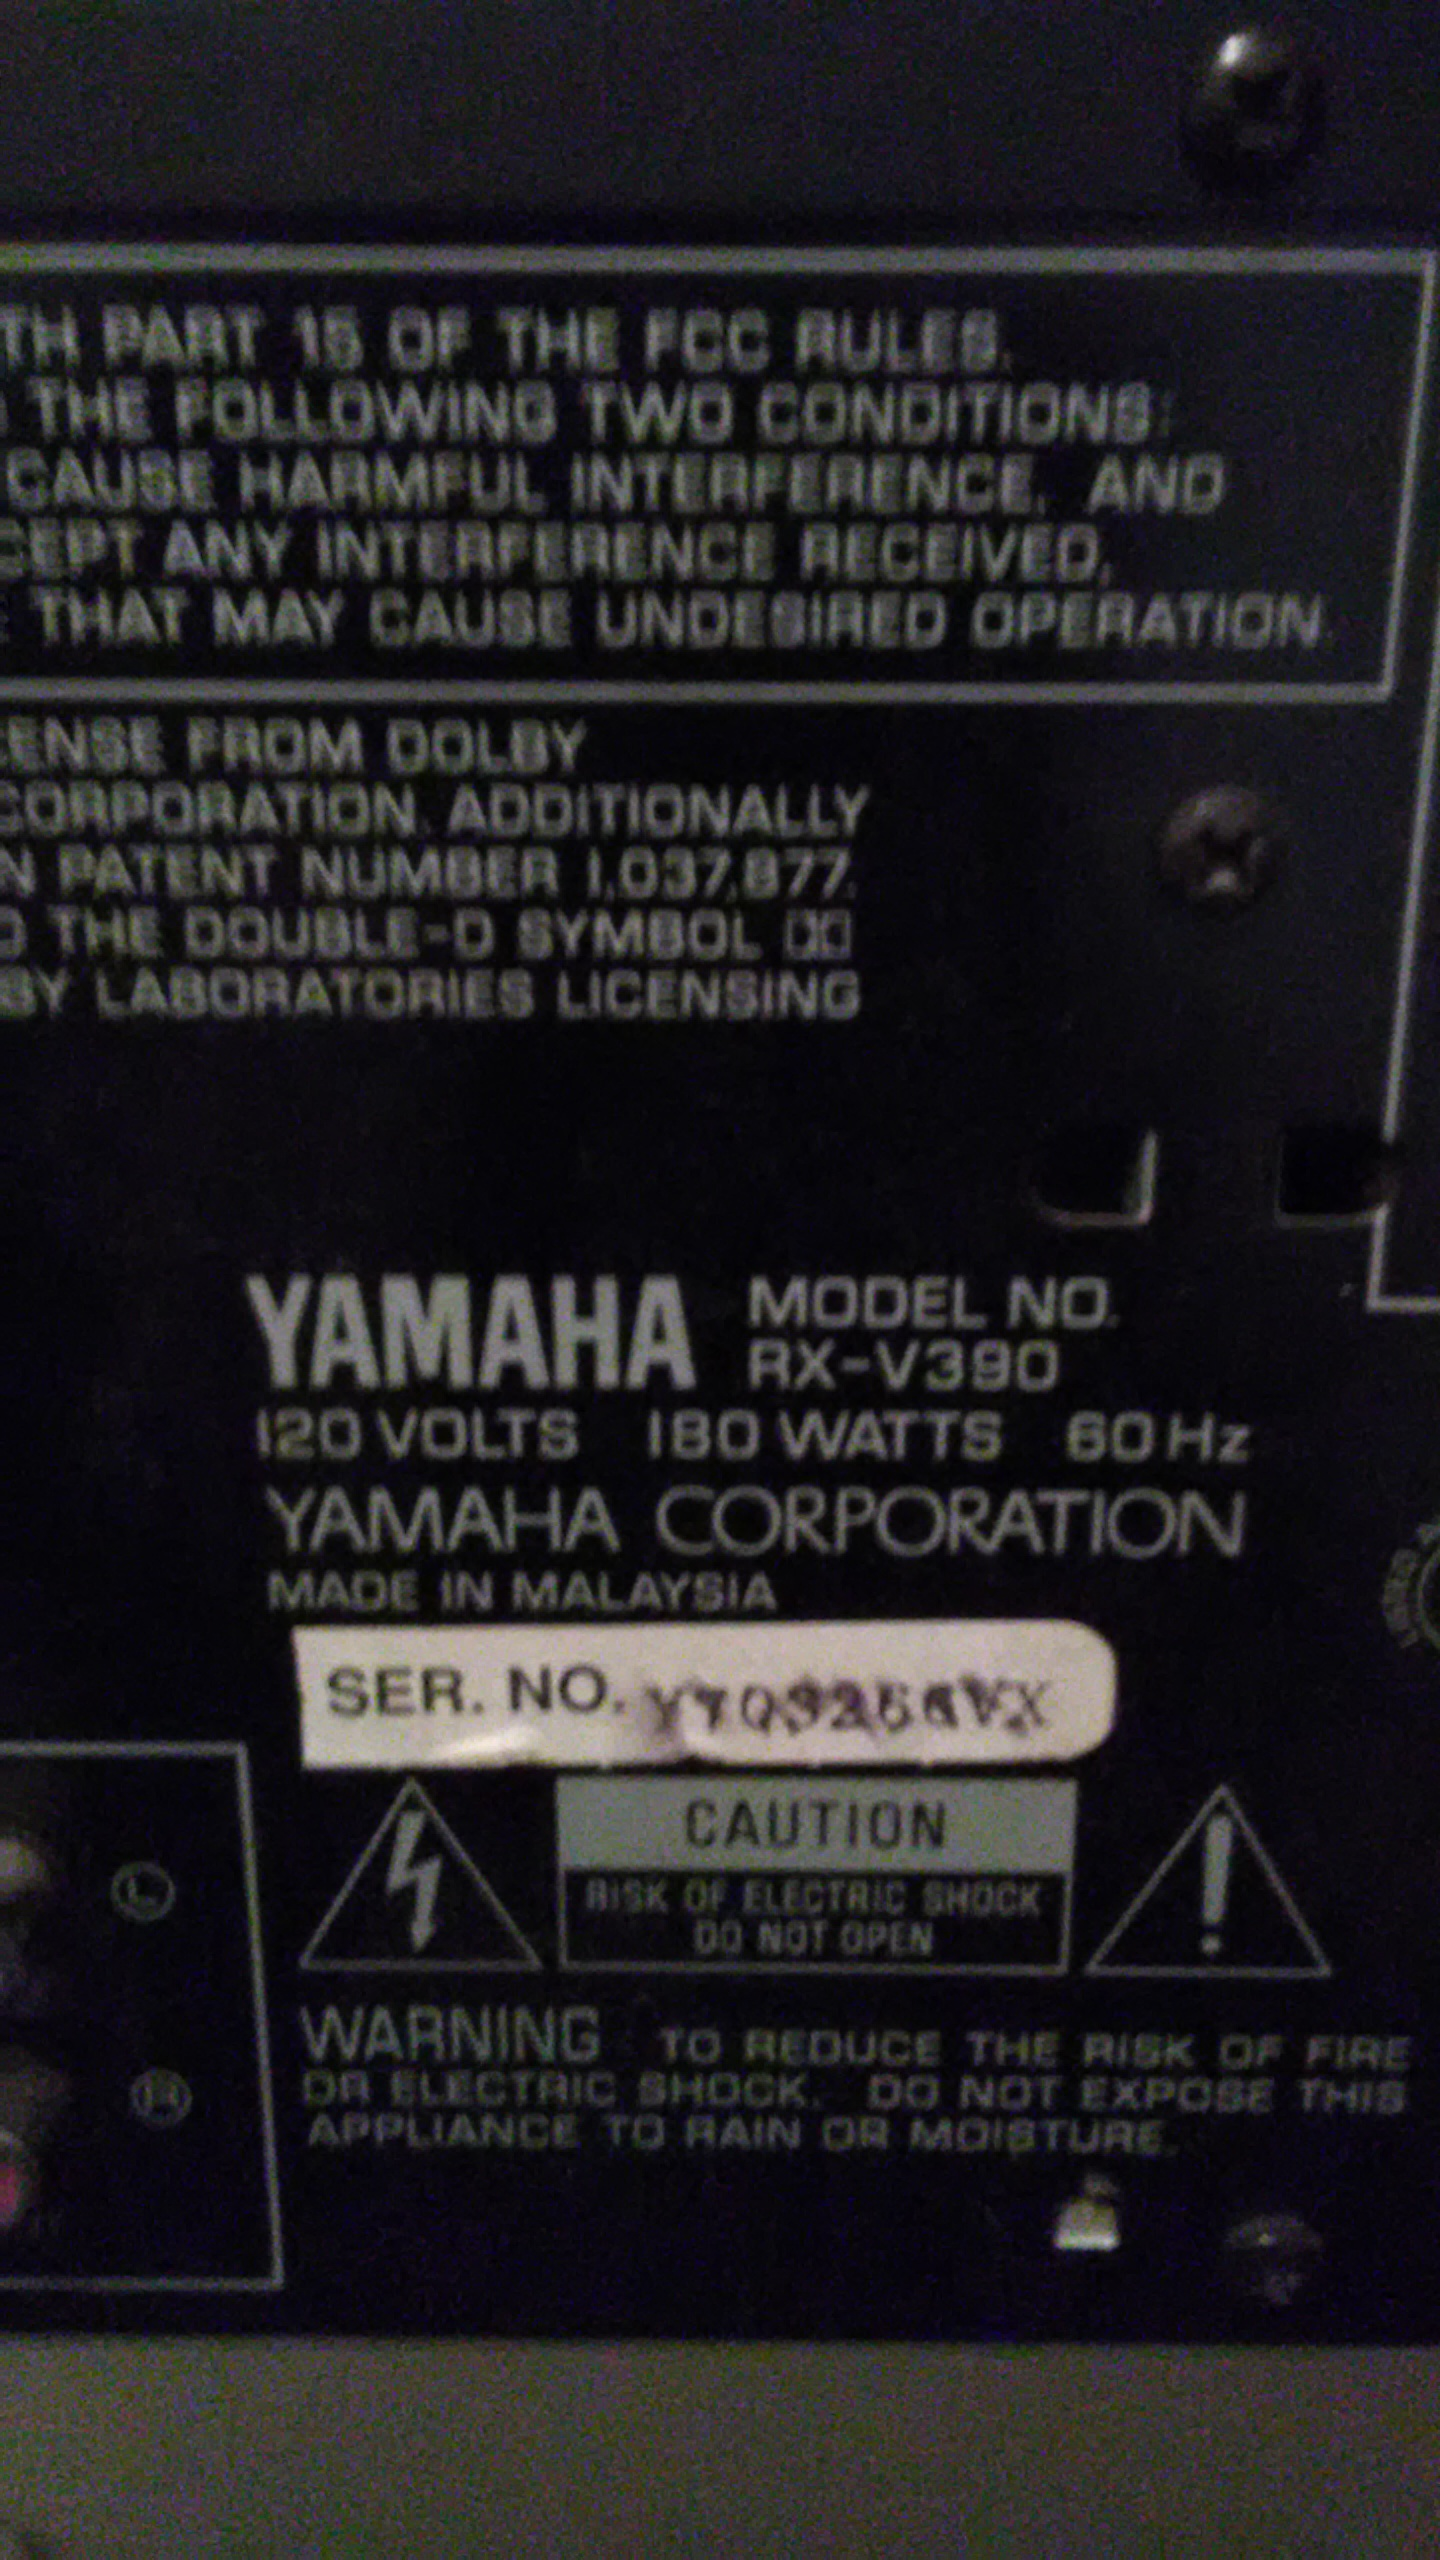 Yamaha hd natural sound stereo receiver